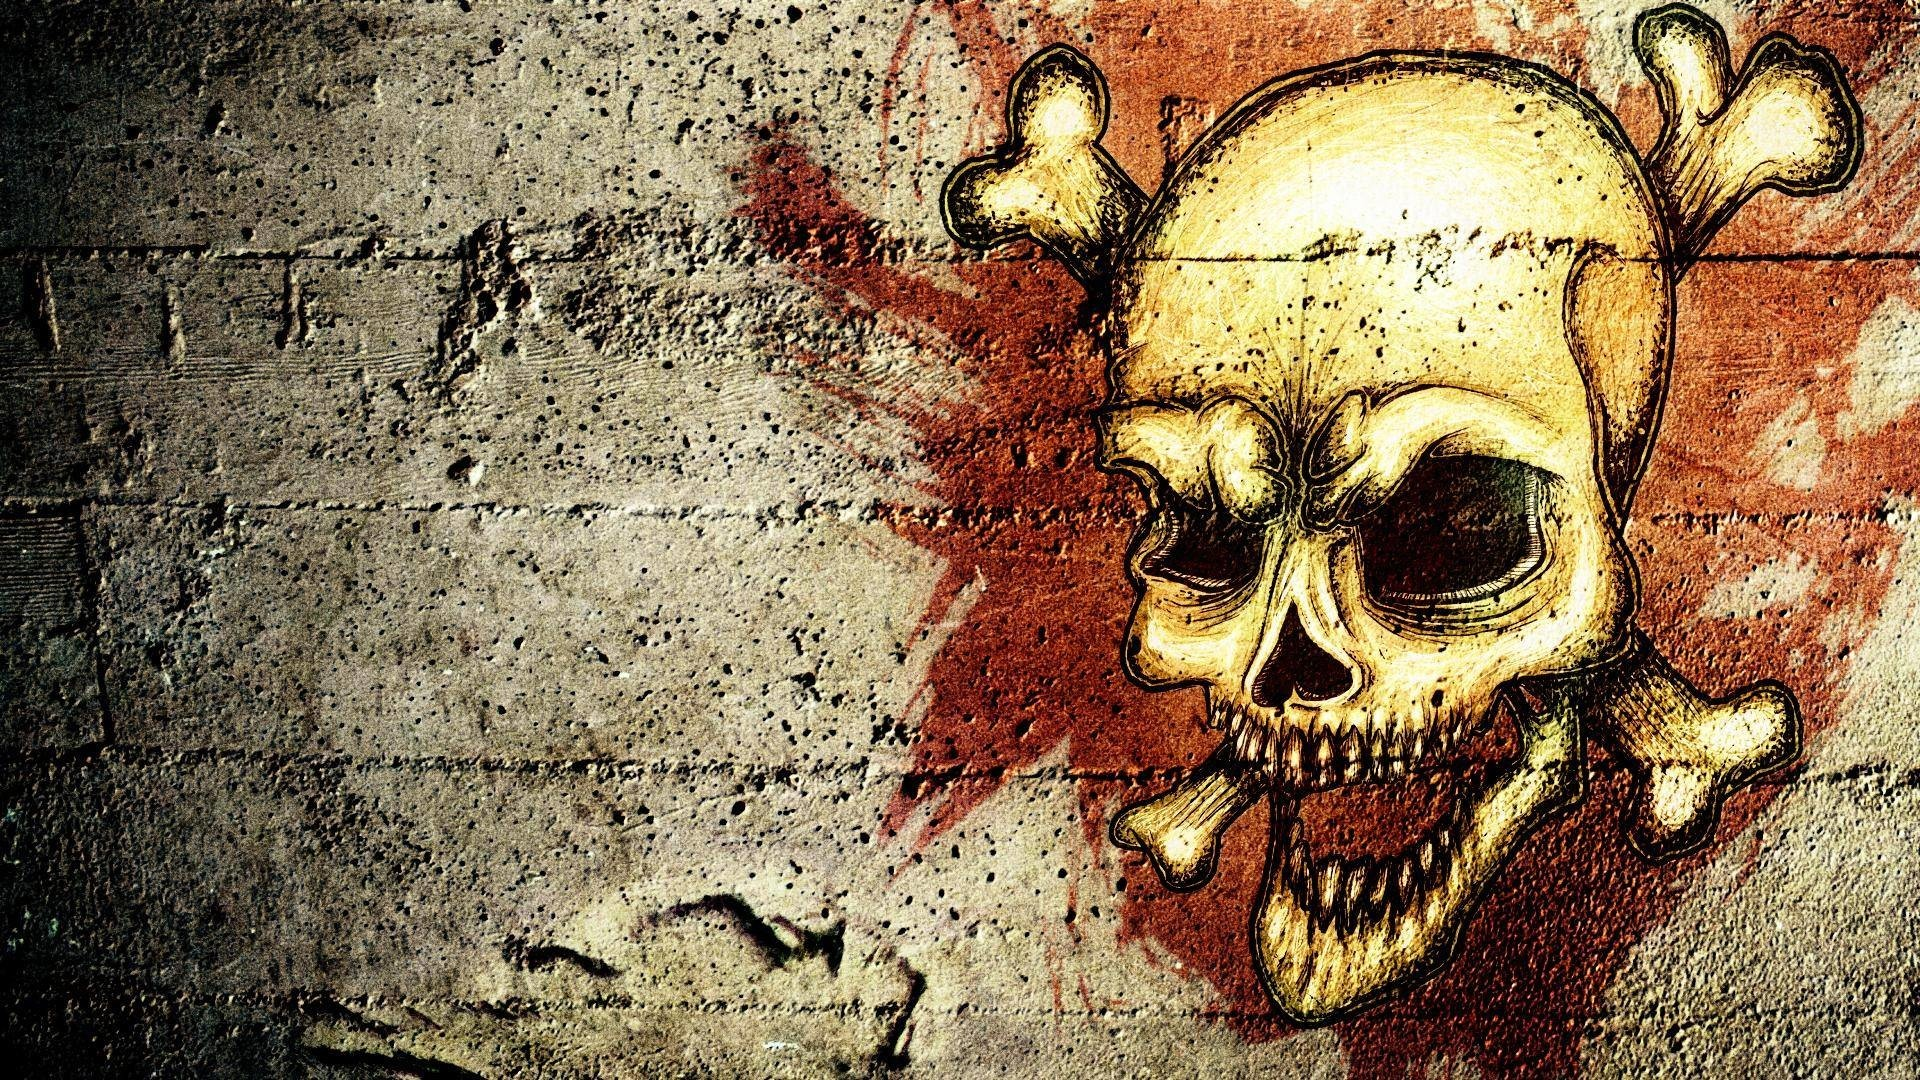 1920x1080  Images For > Skull Wallpaper Hd Download